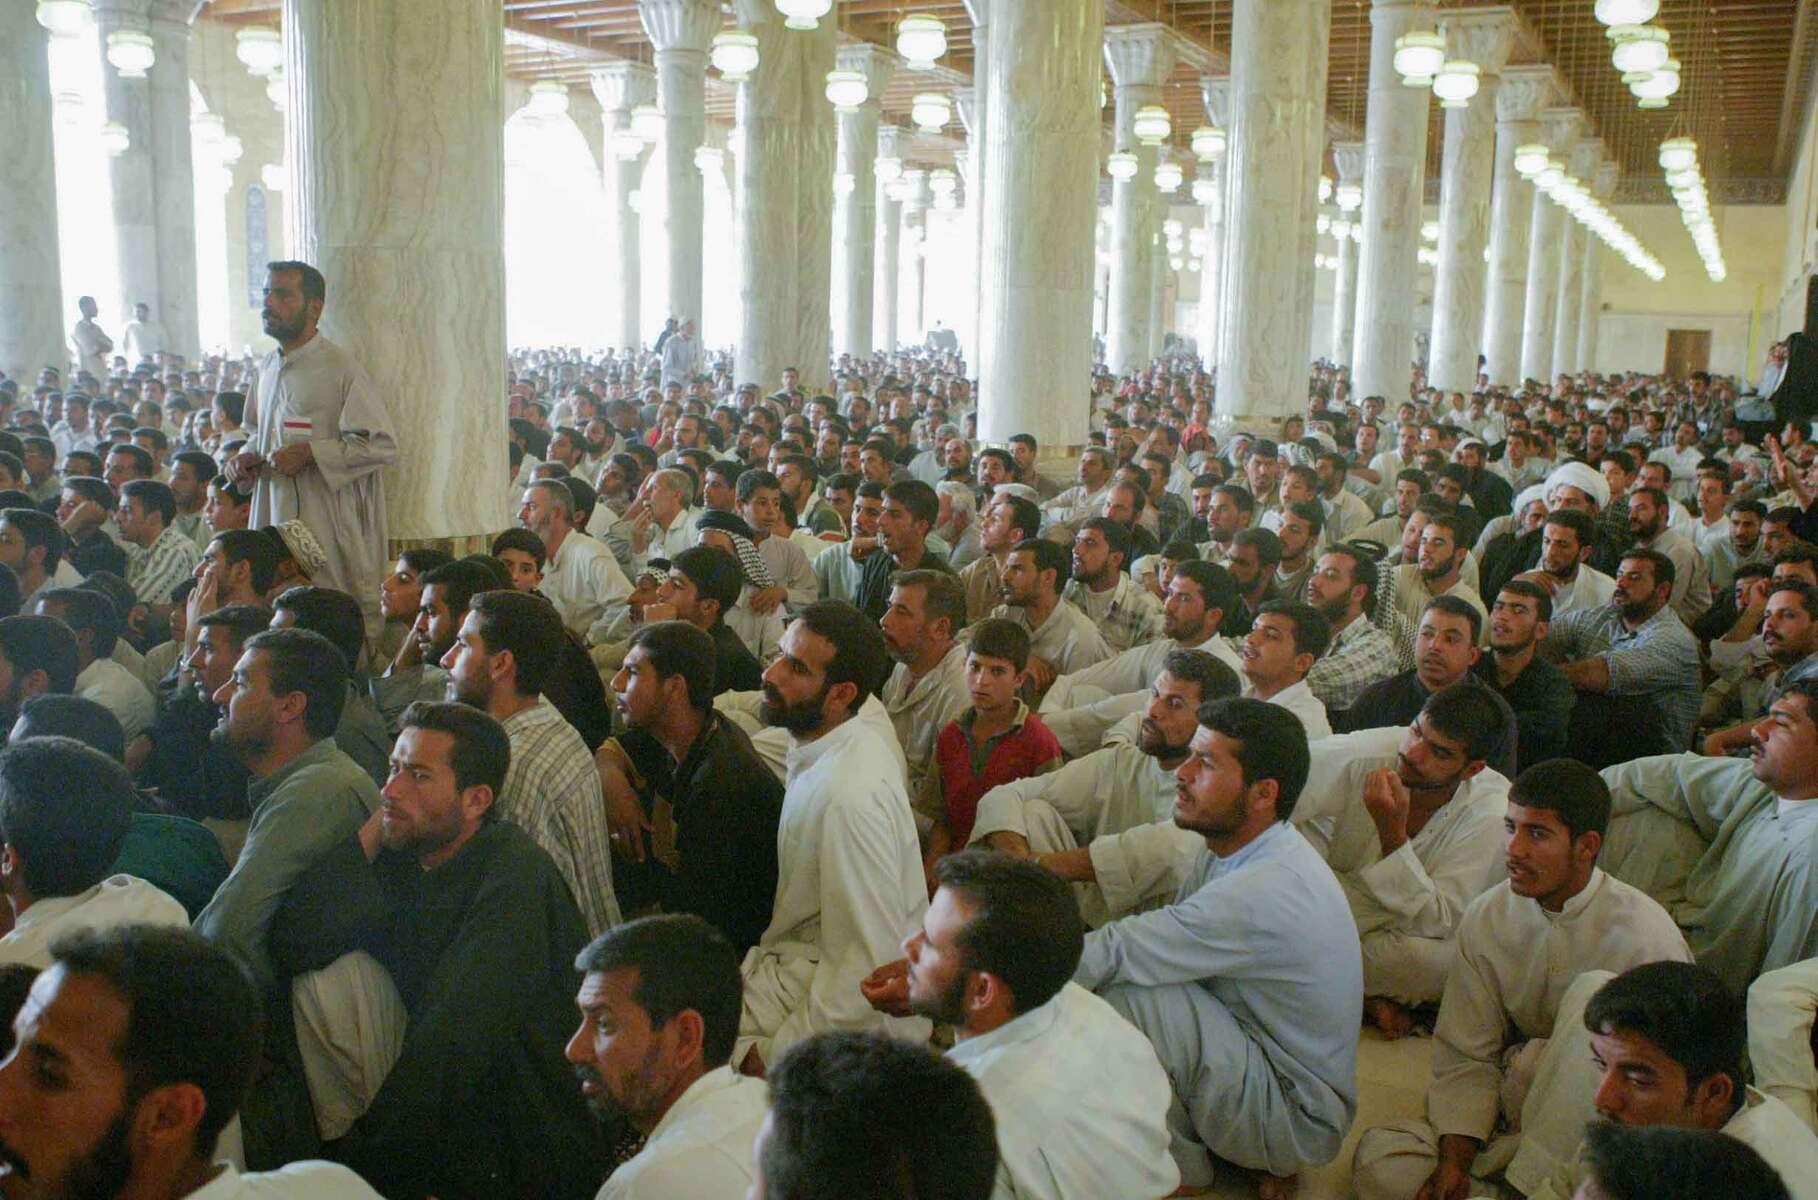 Najaf, Iraq -  Hundreds of  Shia muslims gathered for Jumah prayer and sermon. The Iman who lead Friday prayers was Muqtada al_Sadr, who is a very influential cleric in Iraq. This gathering is at the  Imam Ali Holy Shrine.  - Ozier Muhammad / NYT